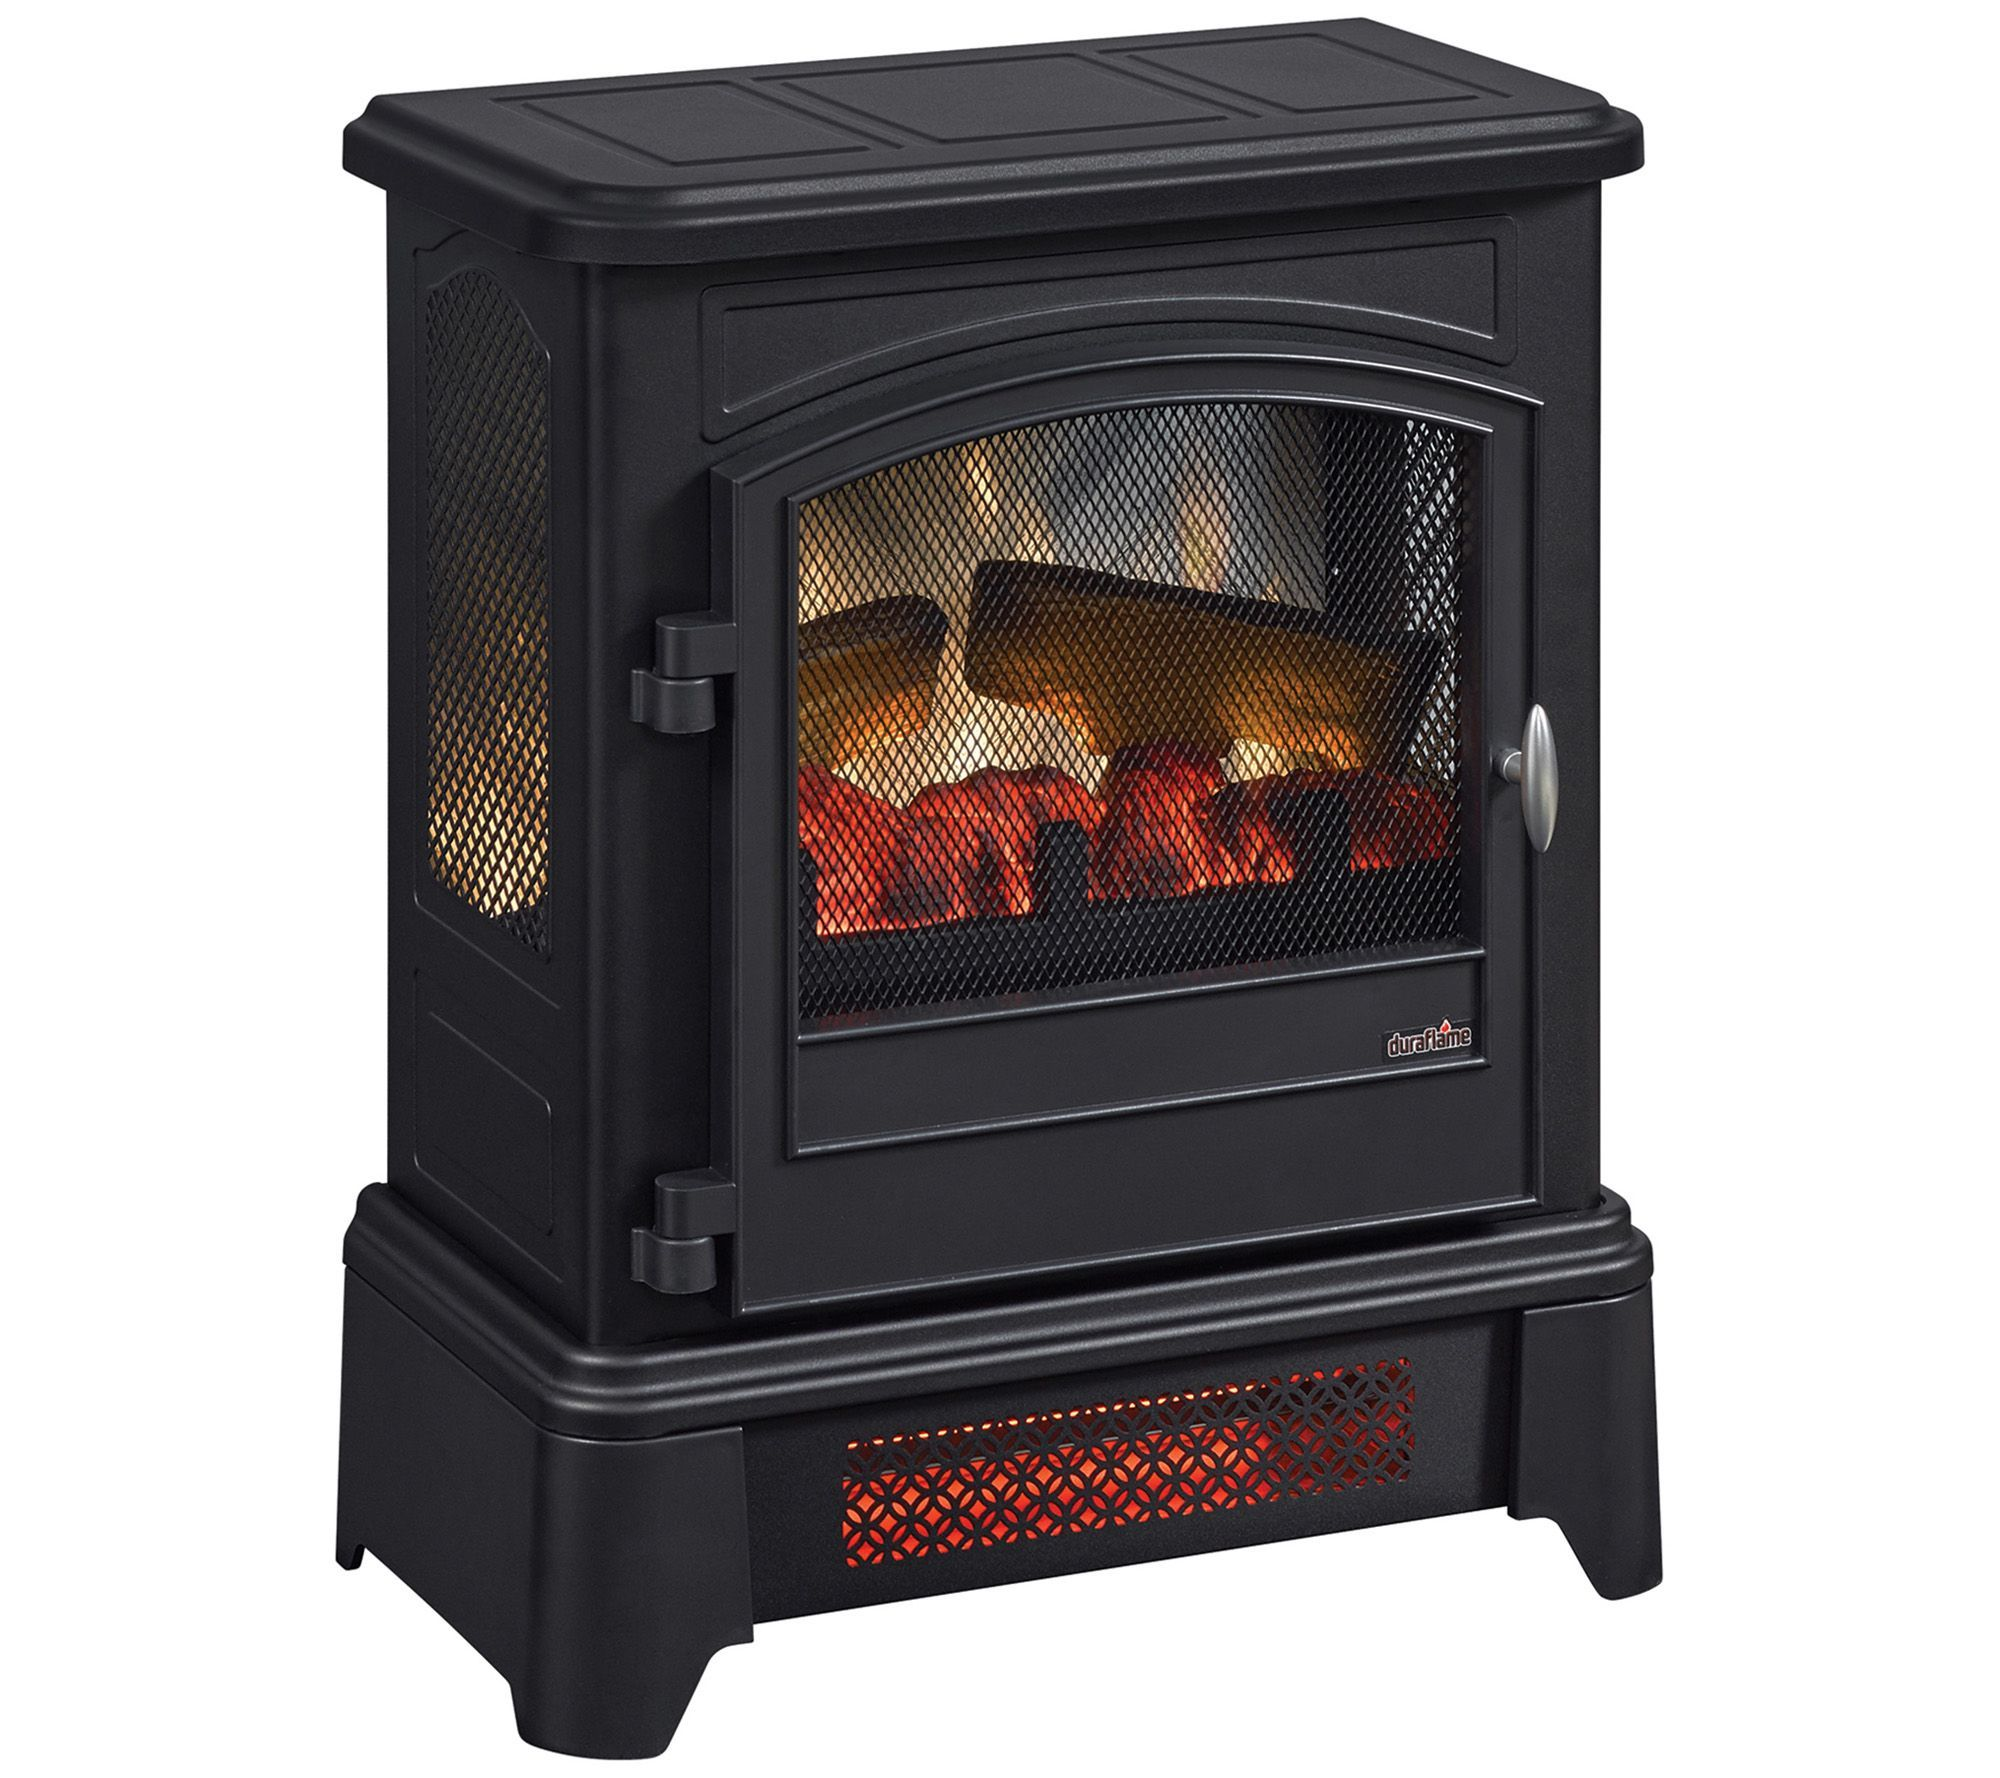 Duraflame Infrared Electric Stove Heater with Pedestal